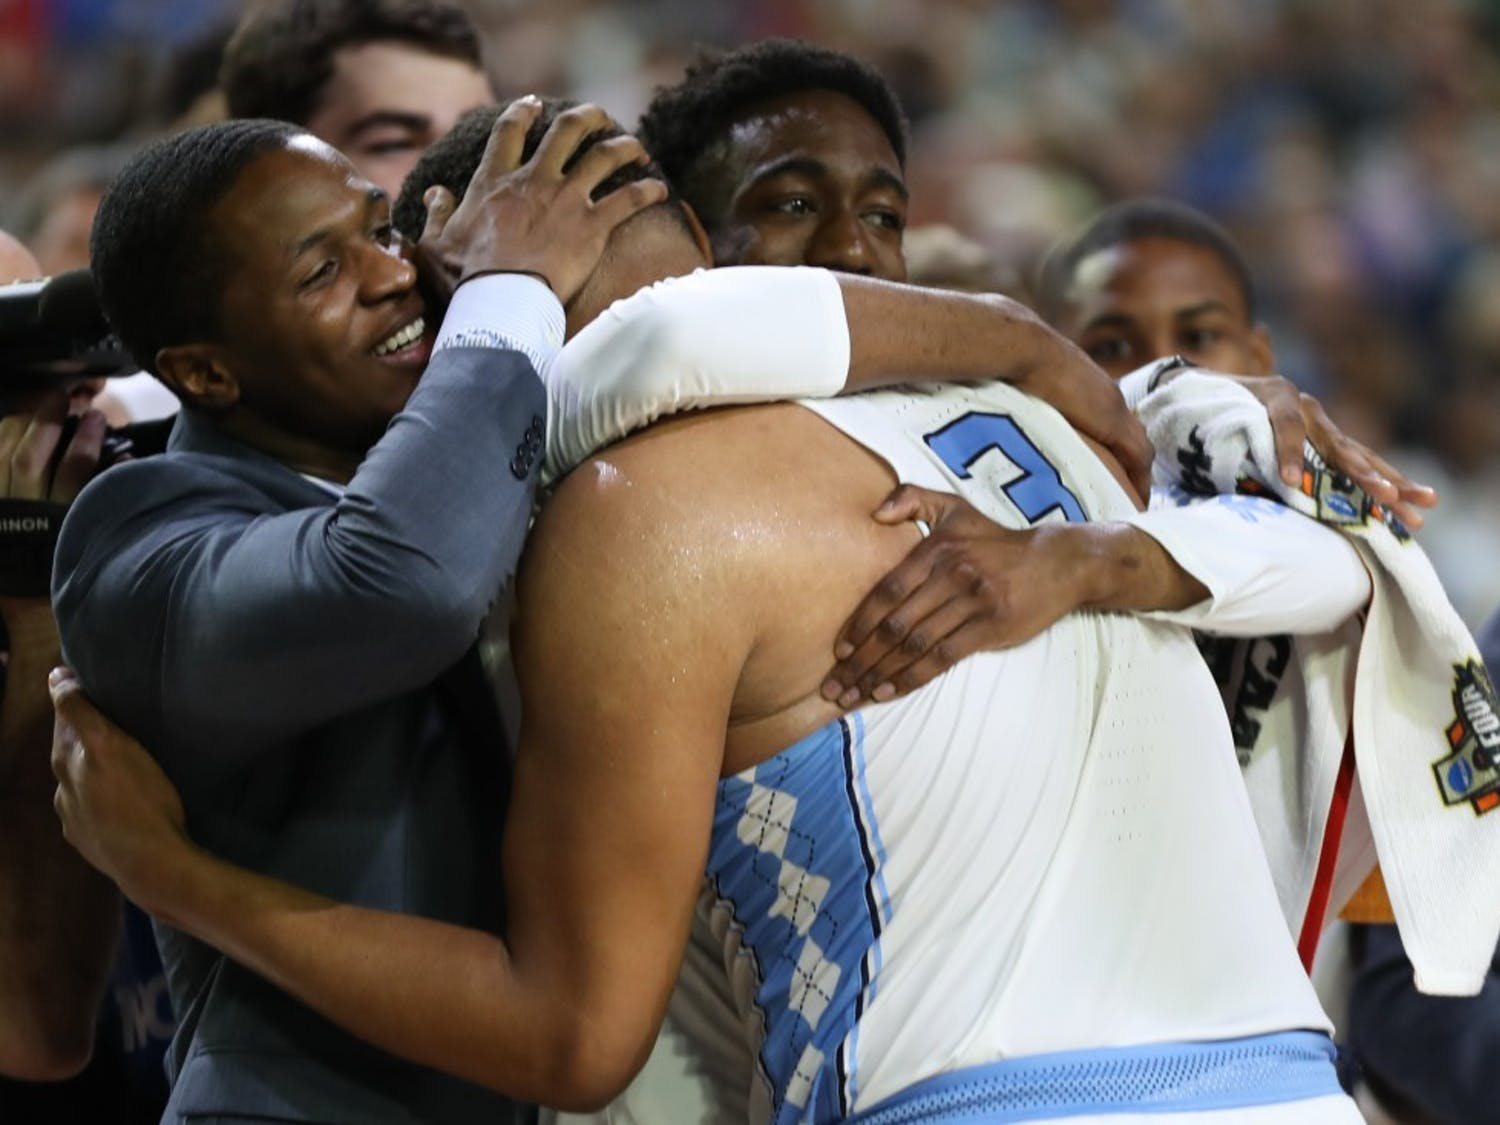 The North Carolina men's basketball team defeated Oregon 77-76 in a Final Four matchup. The Tar Heels will play the Gonzaga Bull Dogs for the National Championship on Monday night, a year after losing to Villanova.